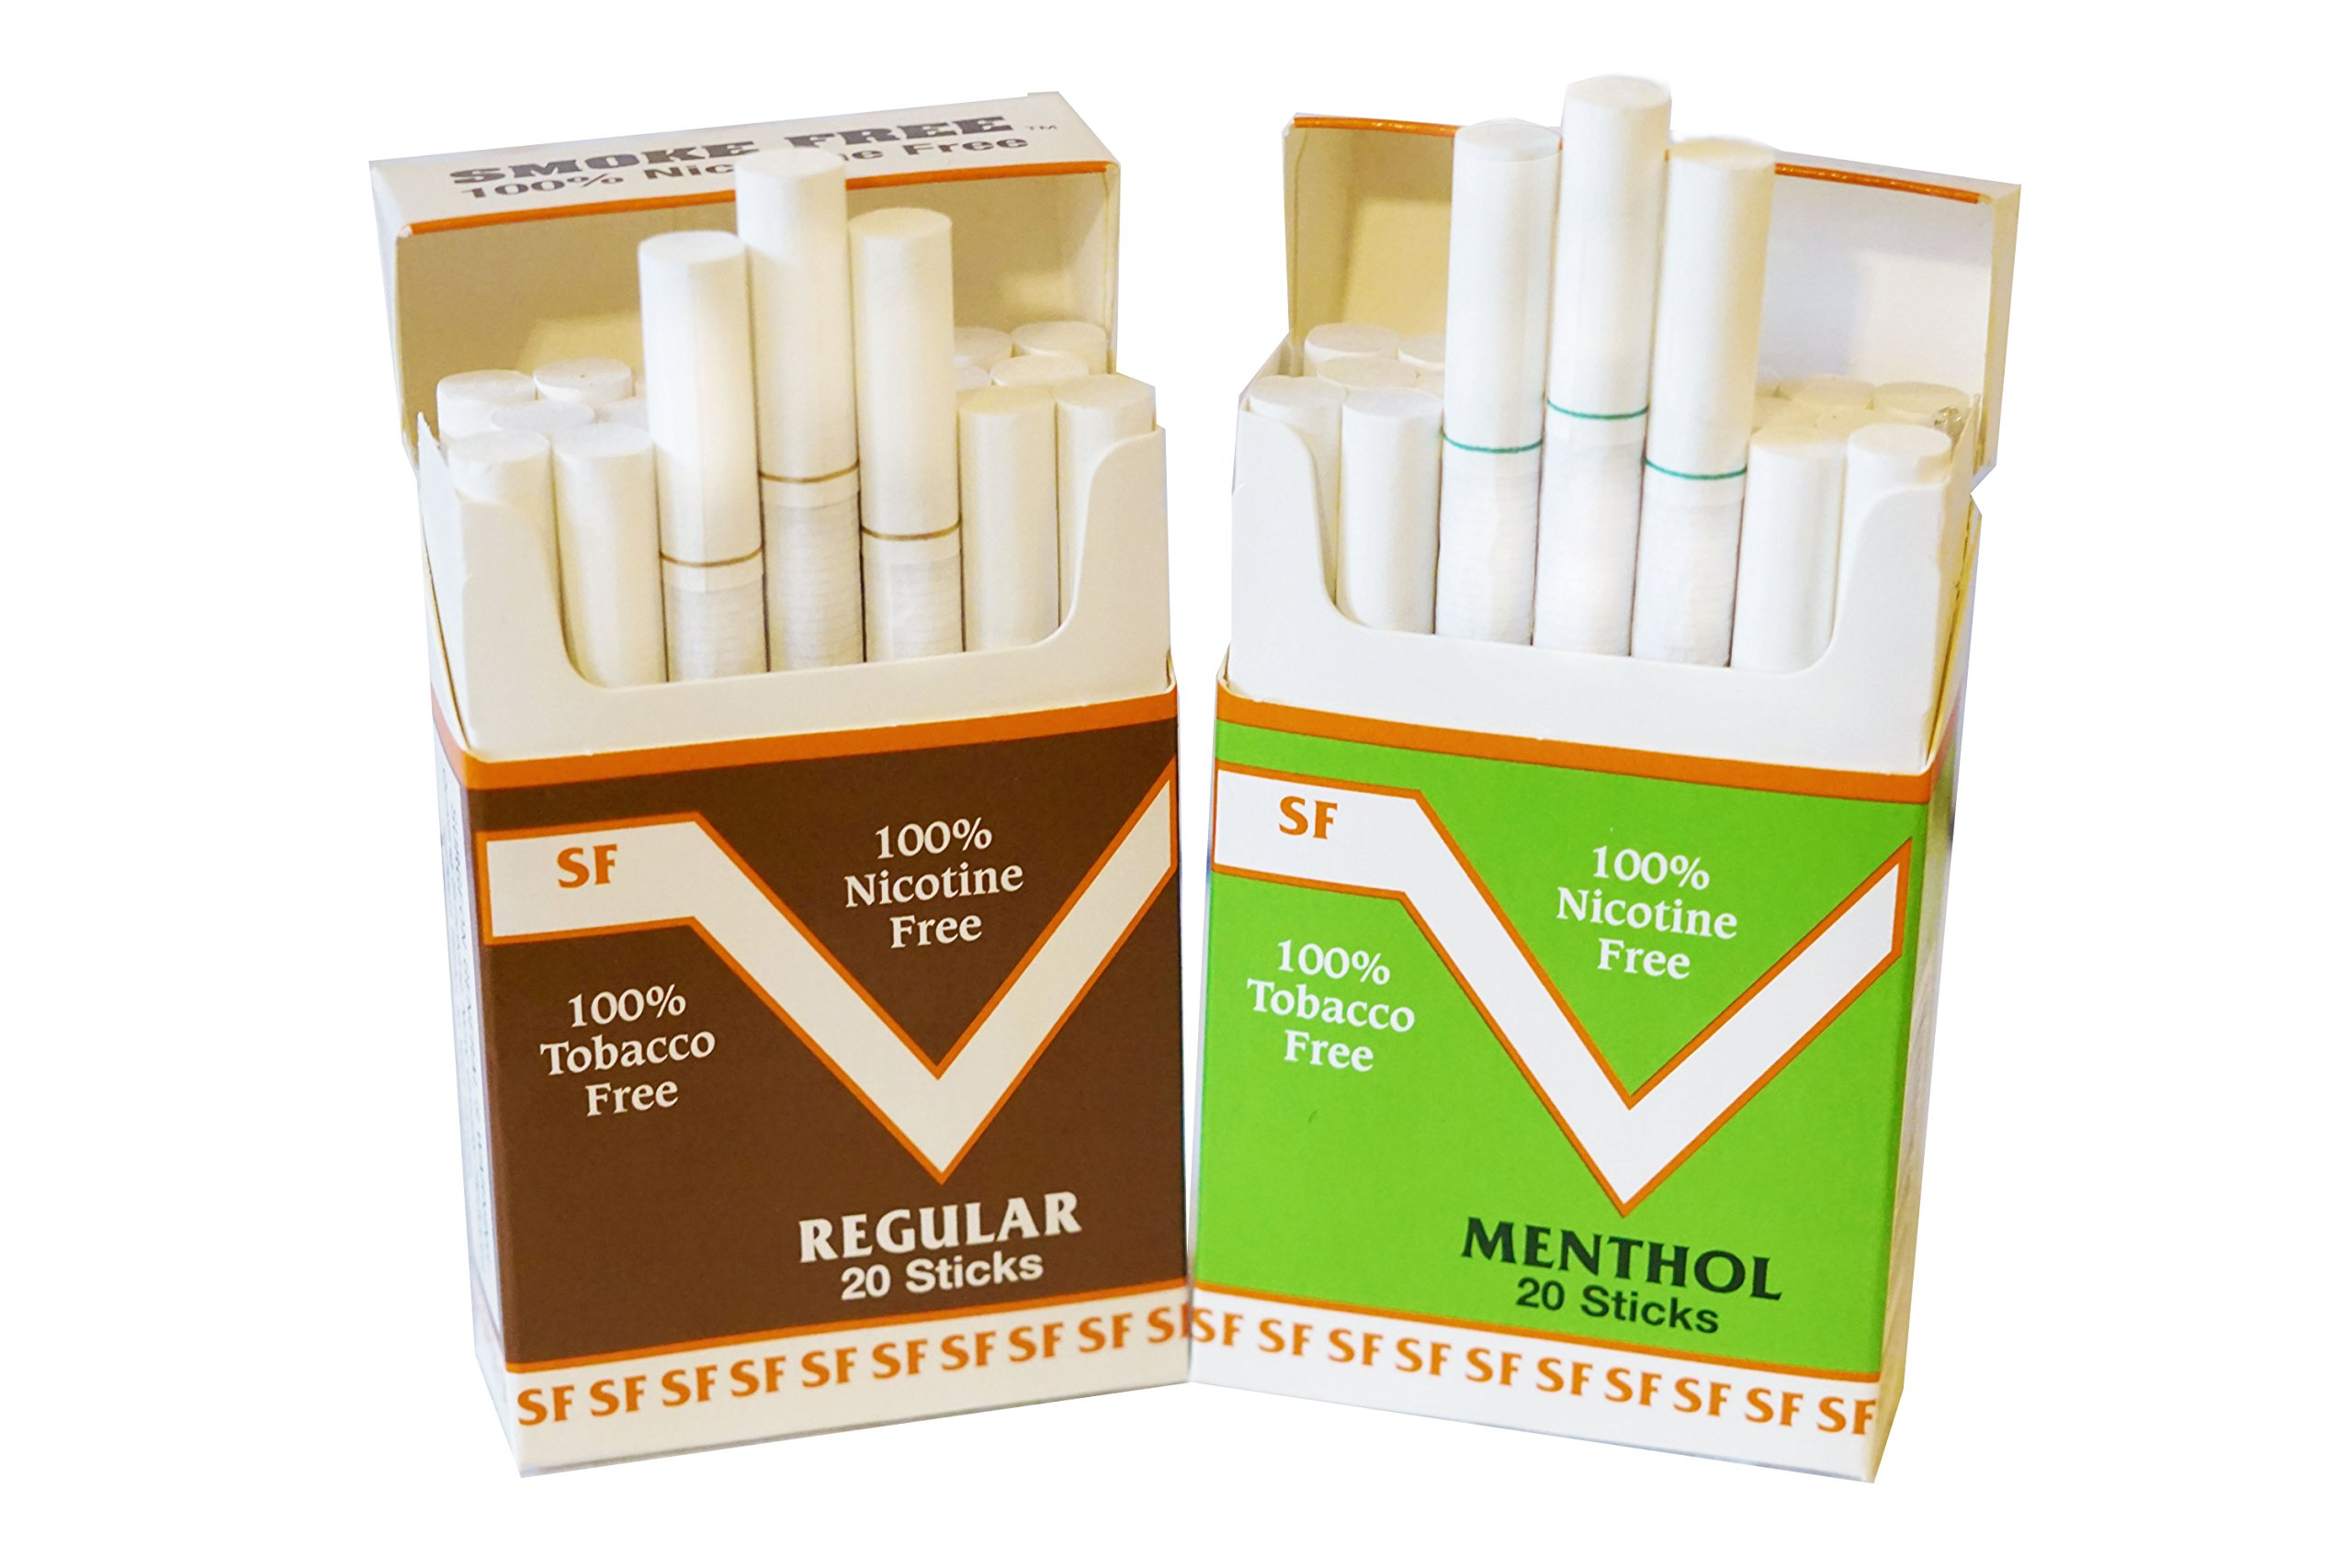 Two Pack Regular & Menthol Flavor Made in USA Since 1998 Smoke Free(Cocoa Bean Cigarettes) by SMOKE FREE